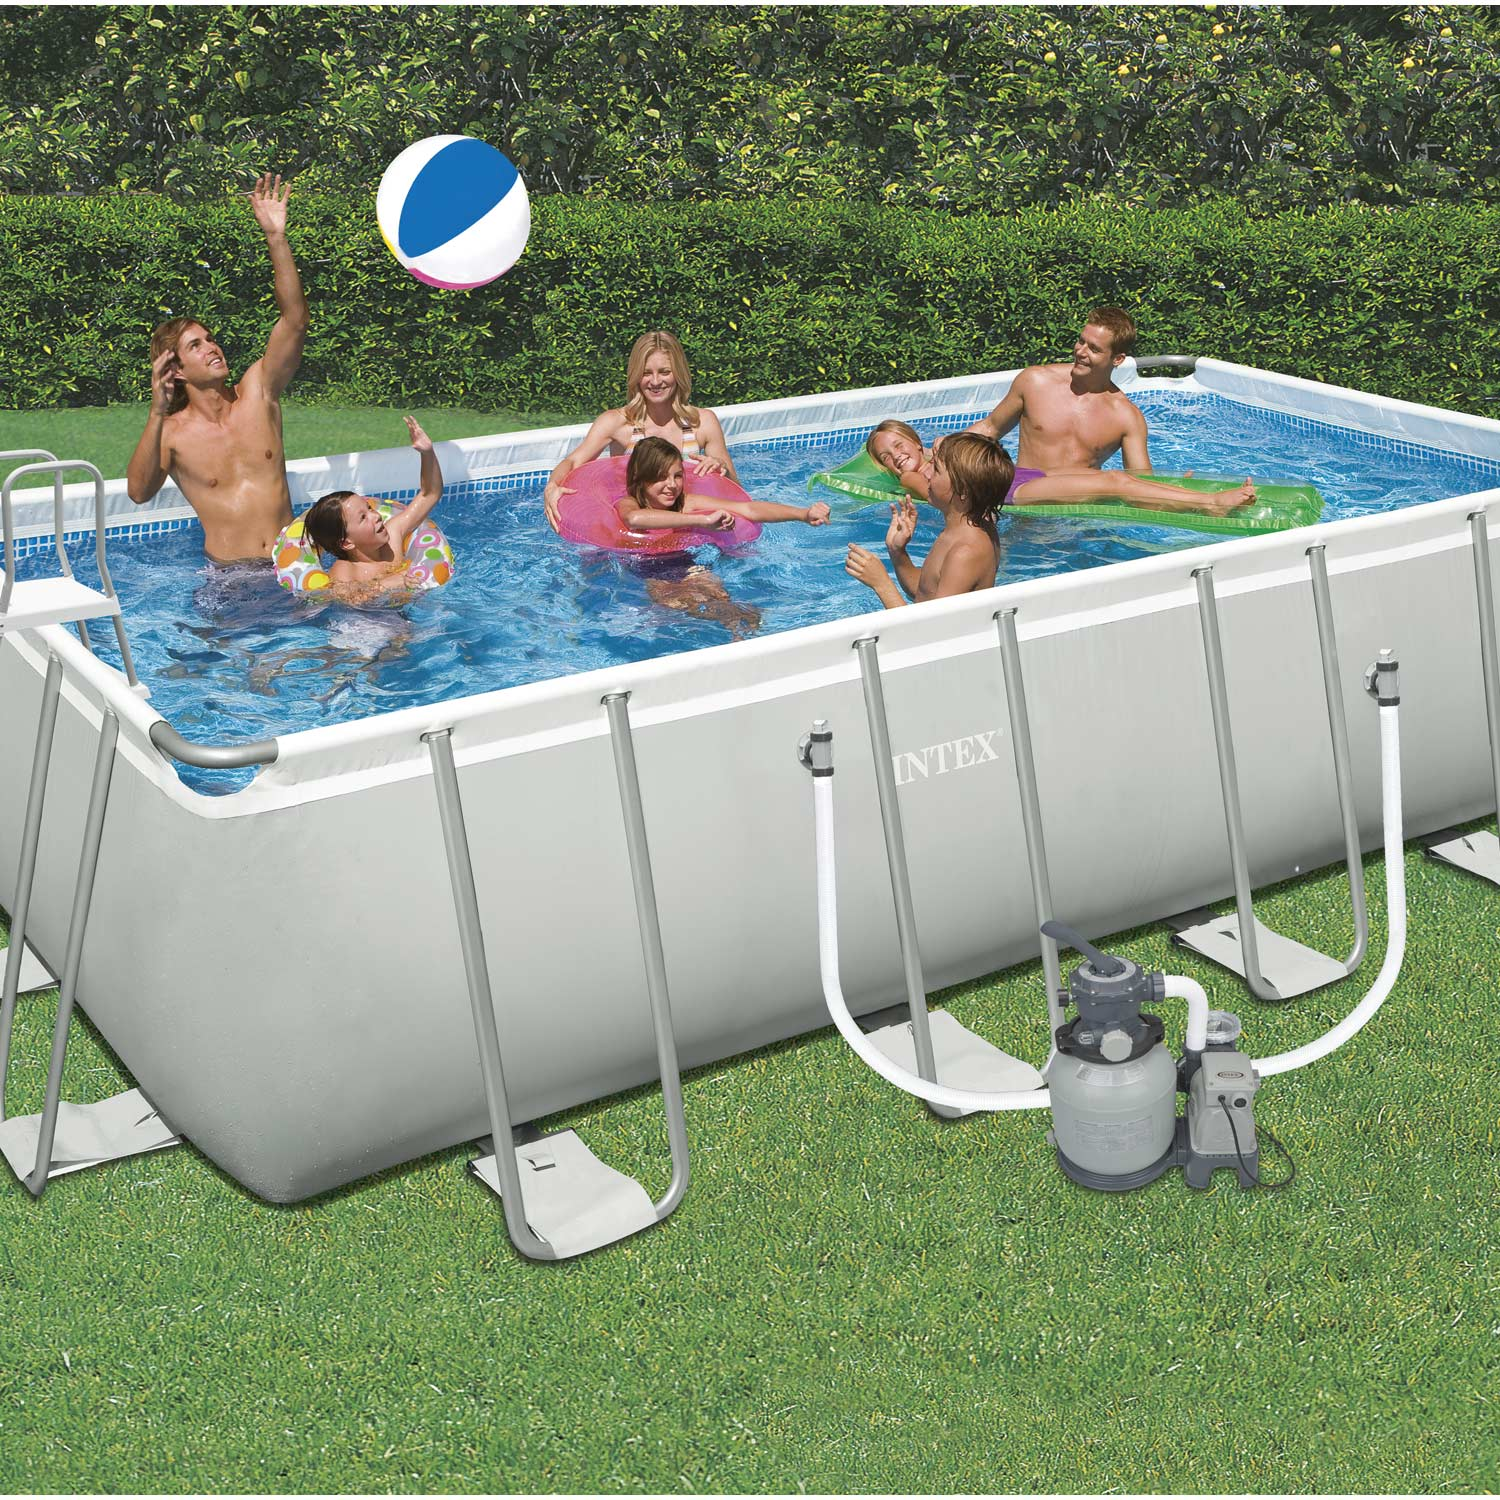 Leroy Merlin Piscine Hors Sol Intex Piscine Hors Sol Autoportante Tubulaire Intex L 6 05 X L